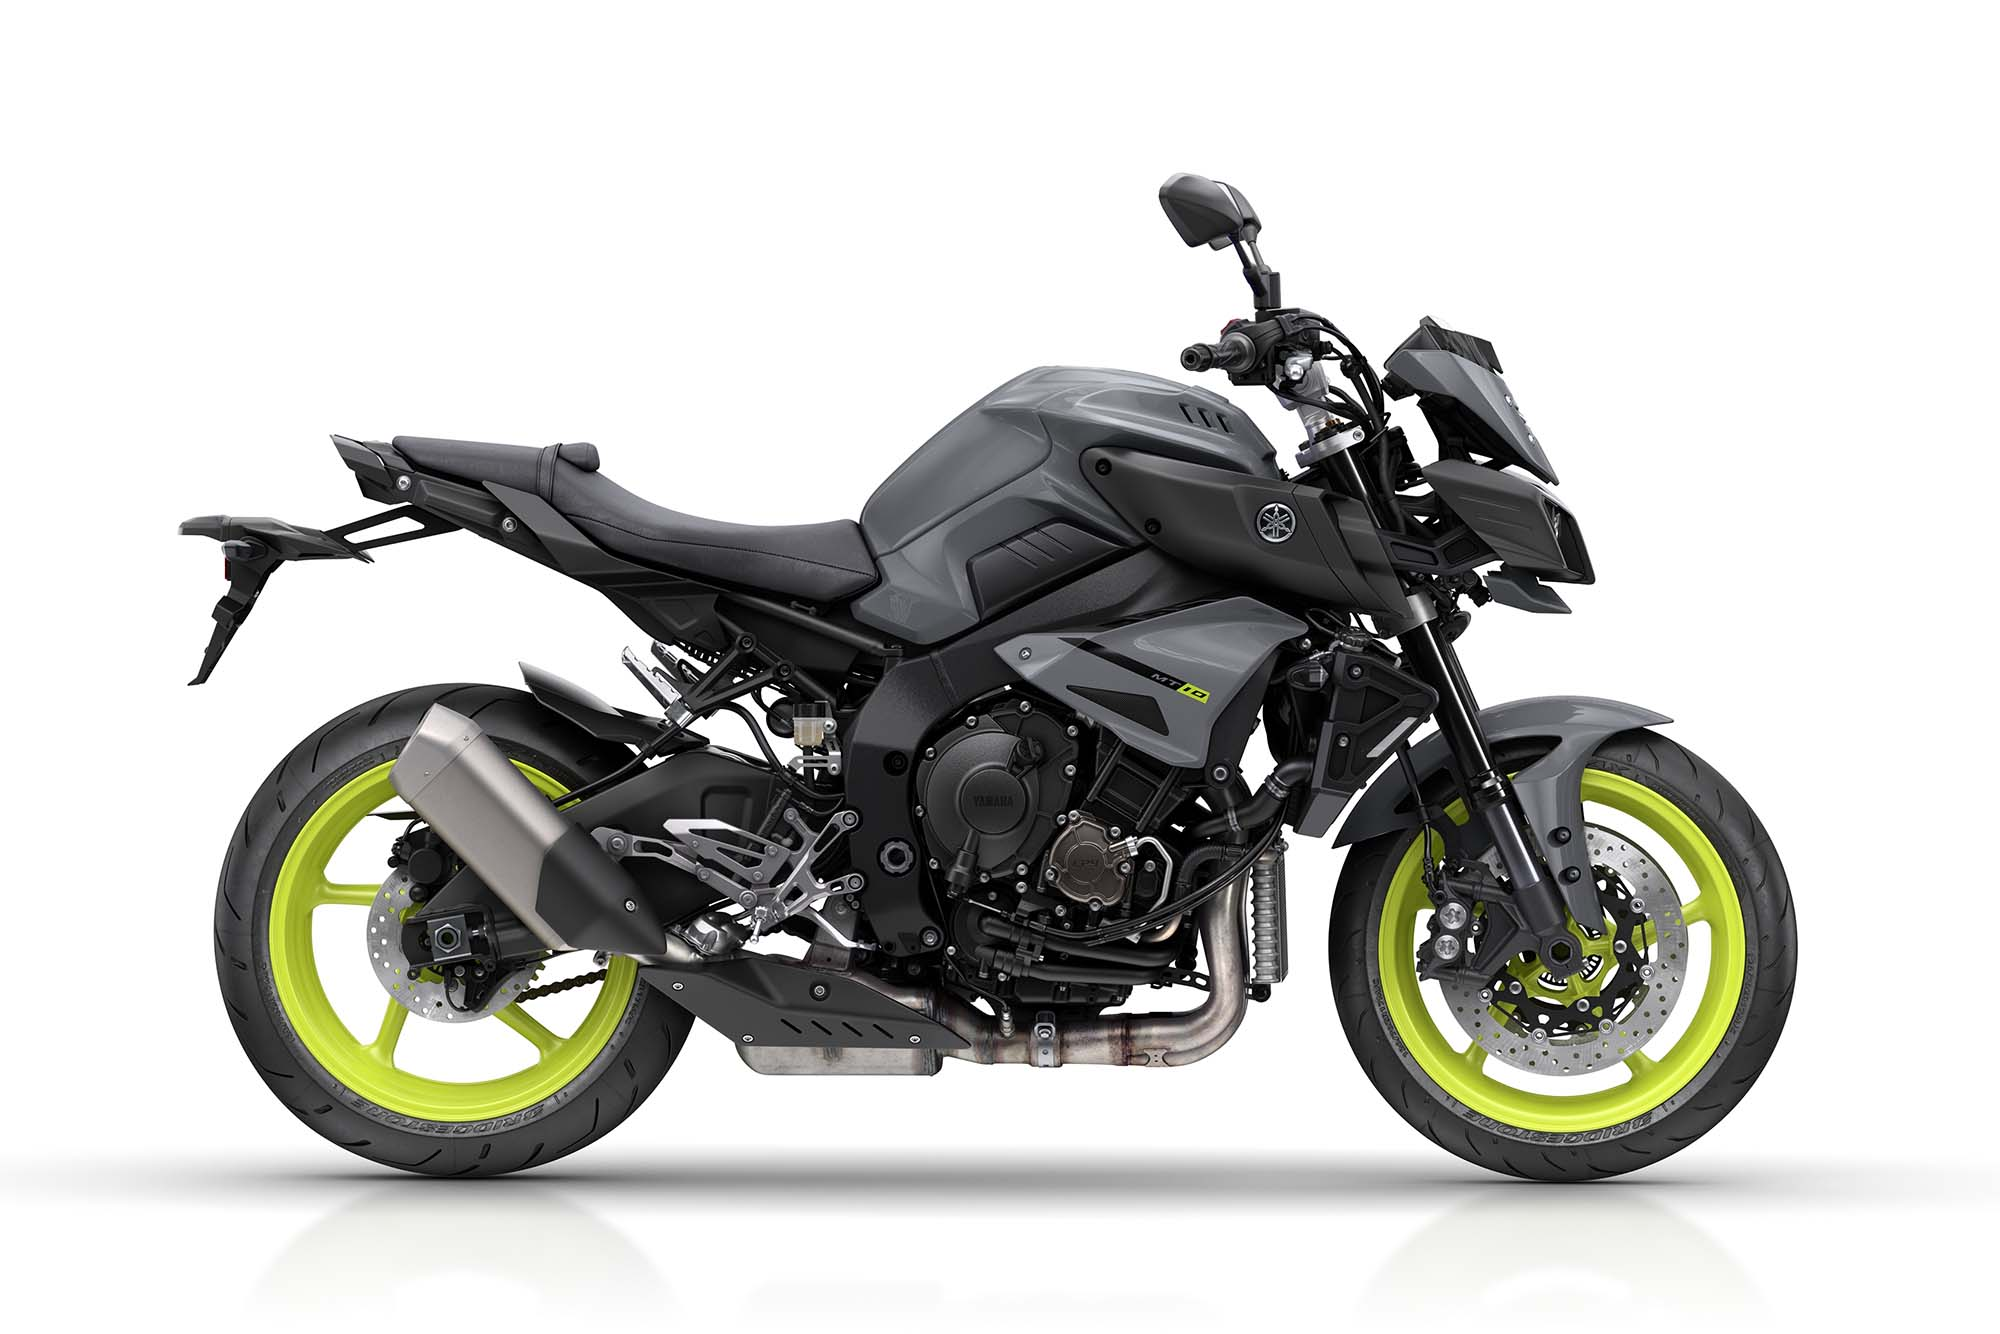 2016 Yamaha Mt 10 on dc motor source